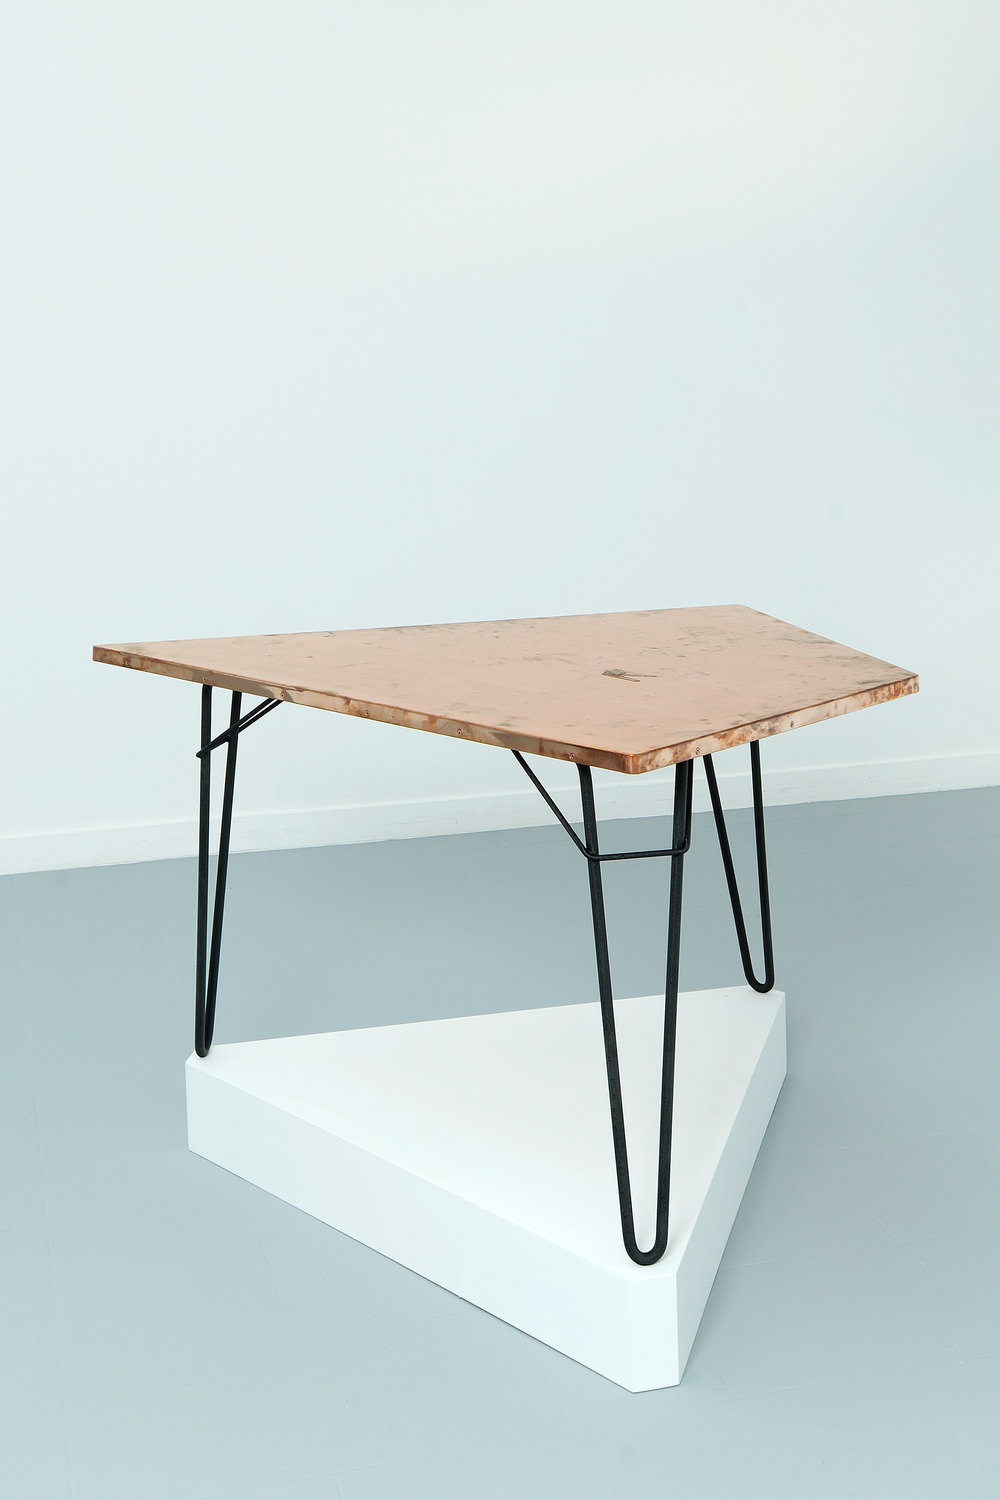 Copper Surrogate (Table: designed by Willy Van der Meeren, 1958; Galerie Rodolphe Janssen, Brussels, Belgium, August 10th–September 2nd, 2011)   2011  Polished copper table top and powder-coat steel  Table: 39 3/4 x 26 1/2 x 1 inches   Surrogates (Tabletop and Desktop), 2008–    Diapositives, 2011